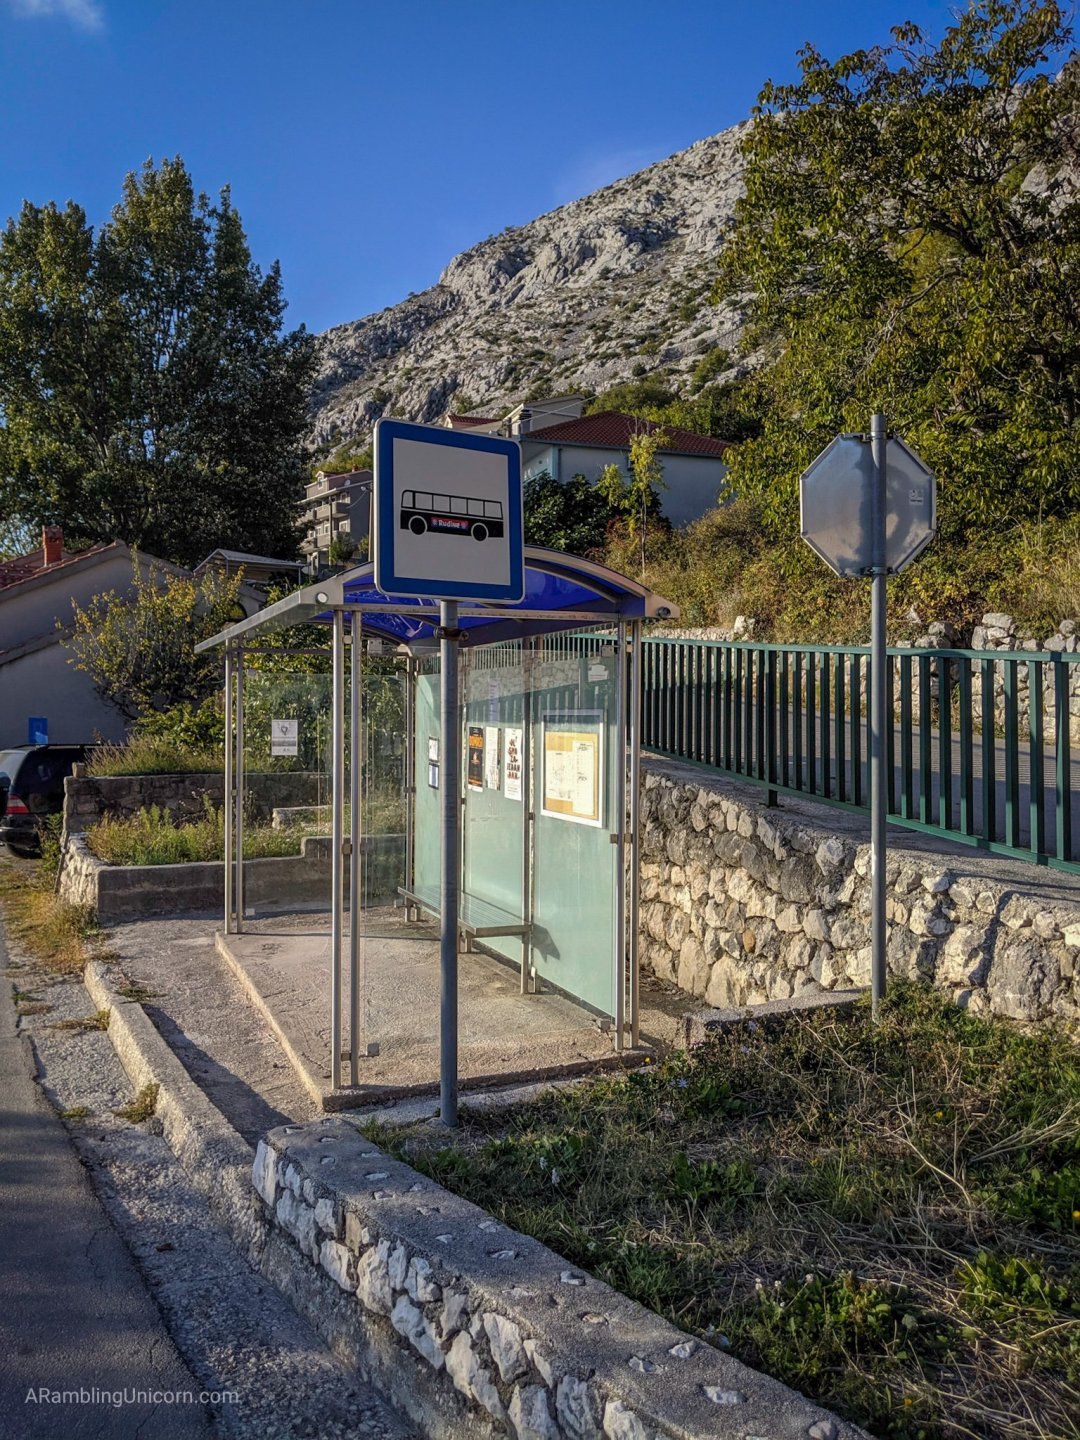 Local bus stop at Gornje Sitno, which is at the base of Mount Mosor.